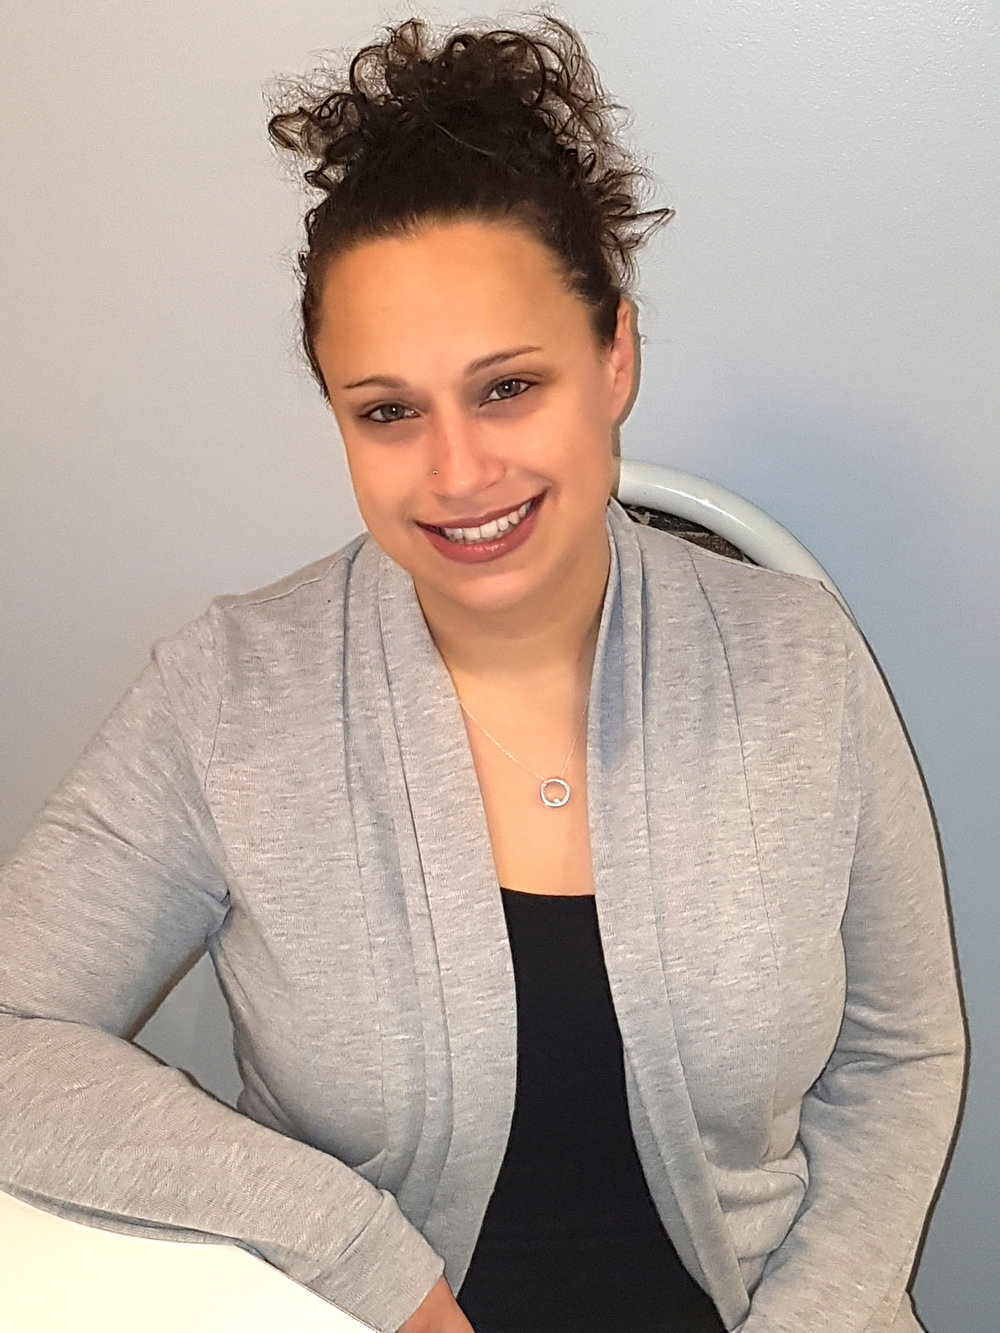 Meet Shawna - I specialize in addictions/substance abuse, geriatric, mood, personality, and psychotic disorders (including support for families).